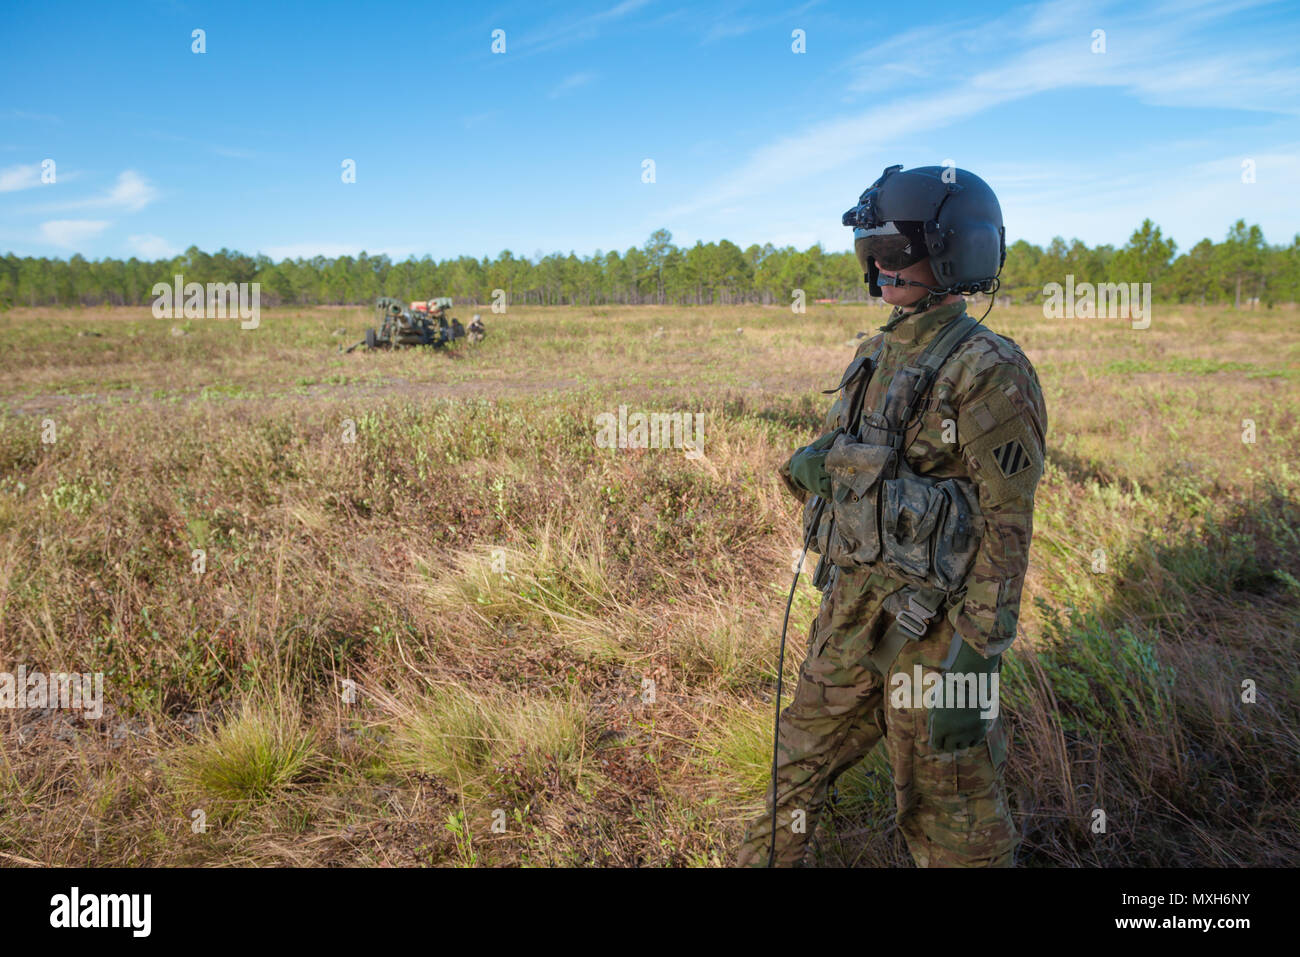 A U.S. Army Chinook crewmember assigned to 3rd Combat Aviation Brigade observes soldiers from 3rd Division Artillery emplace artillery pieces on at a training site on Fort Stewart, 6 Nov 2016. (U.S. Army photo by Lt. Col. Brian J. Fickel) - Stock Image